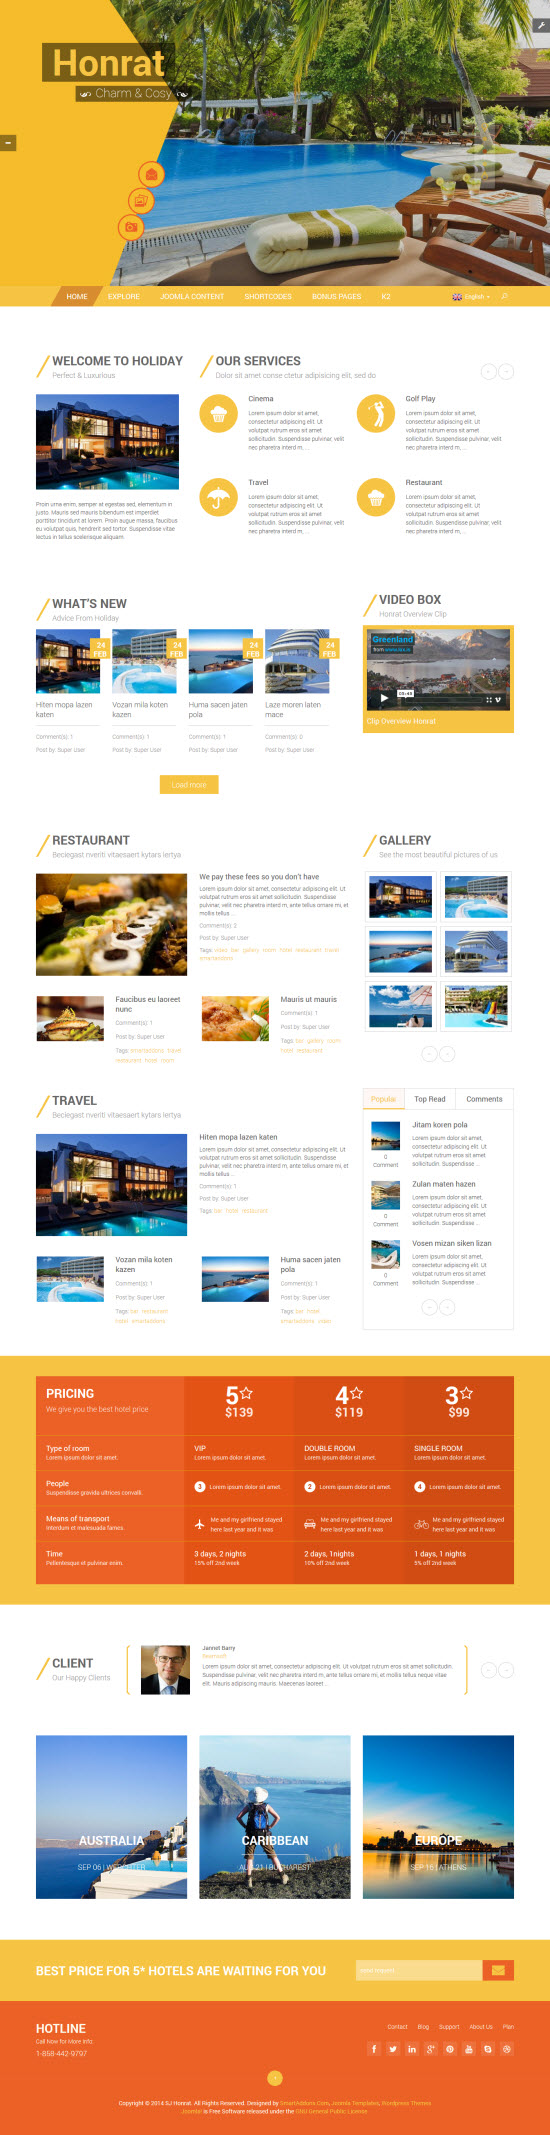 SJ Honrat - Responsive Joomla Hotel, resort & spa Template - 03-yellow.jpg